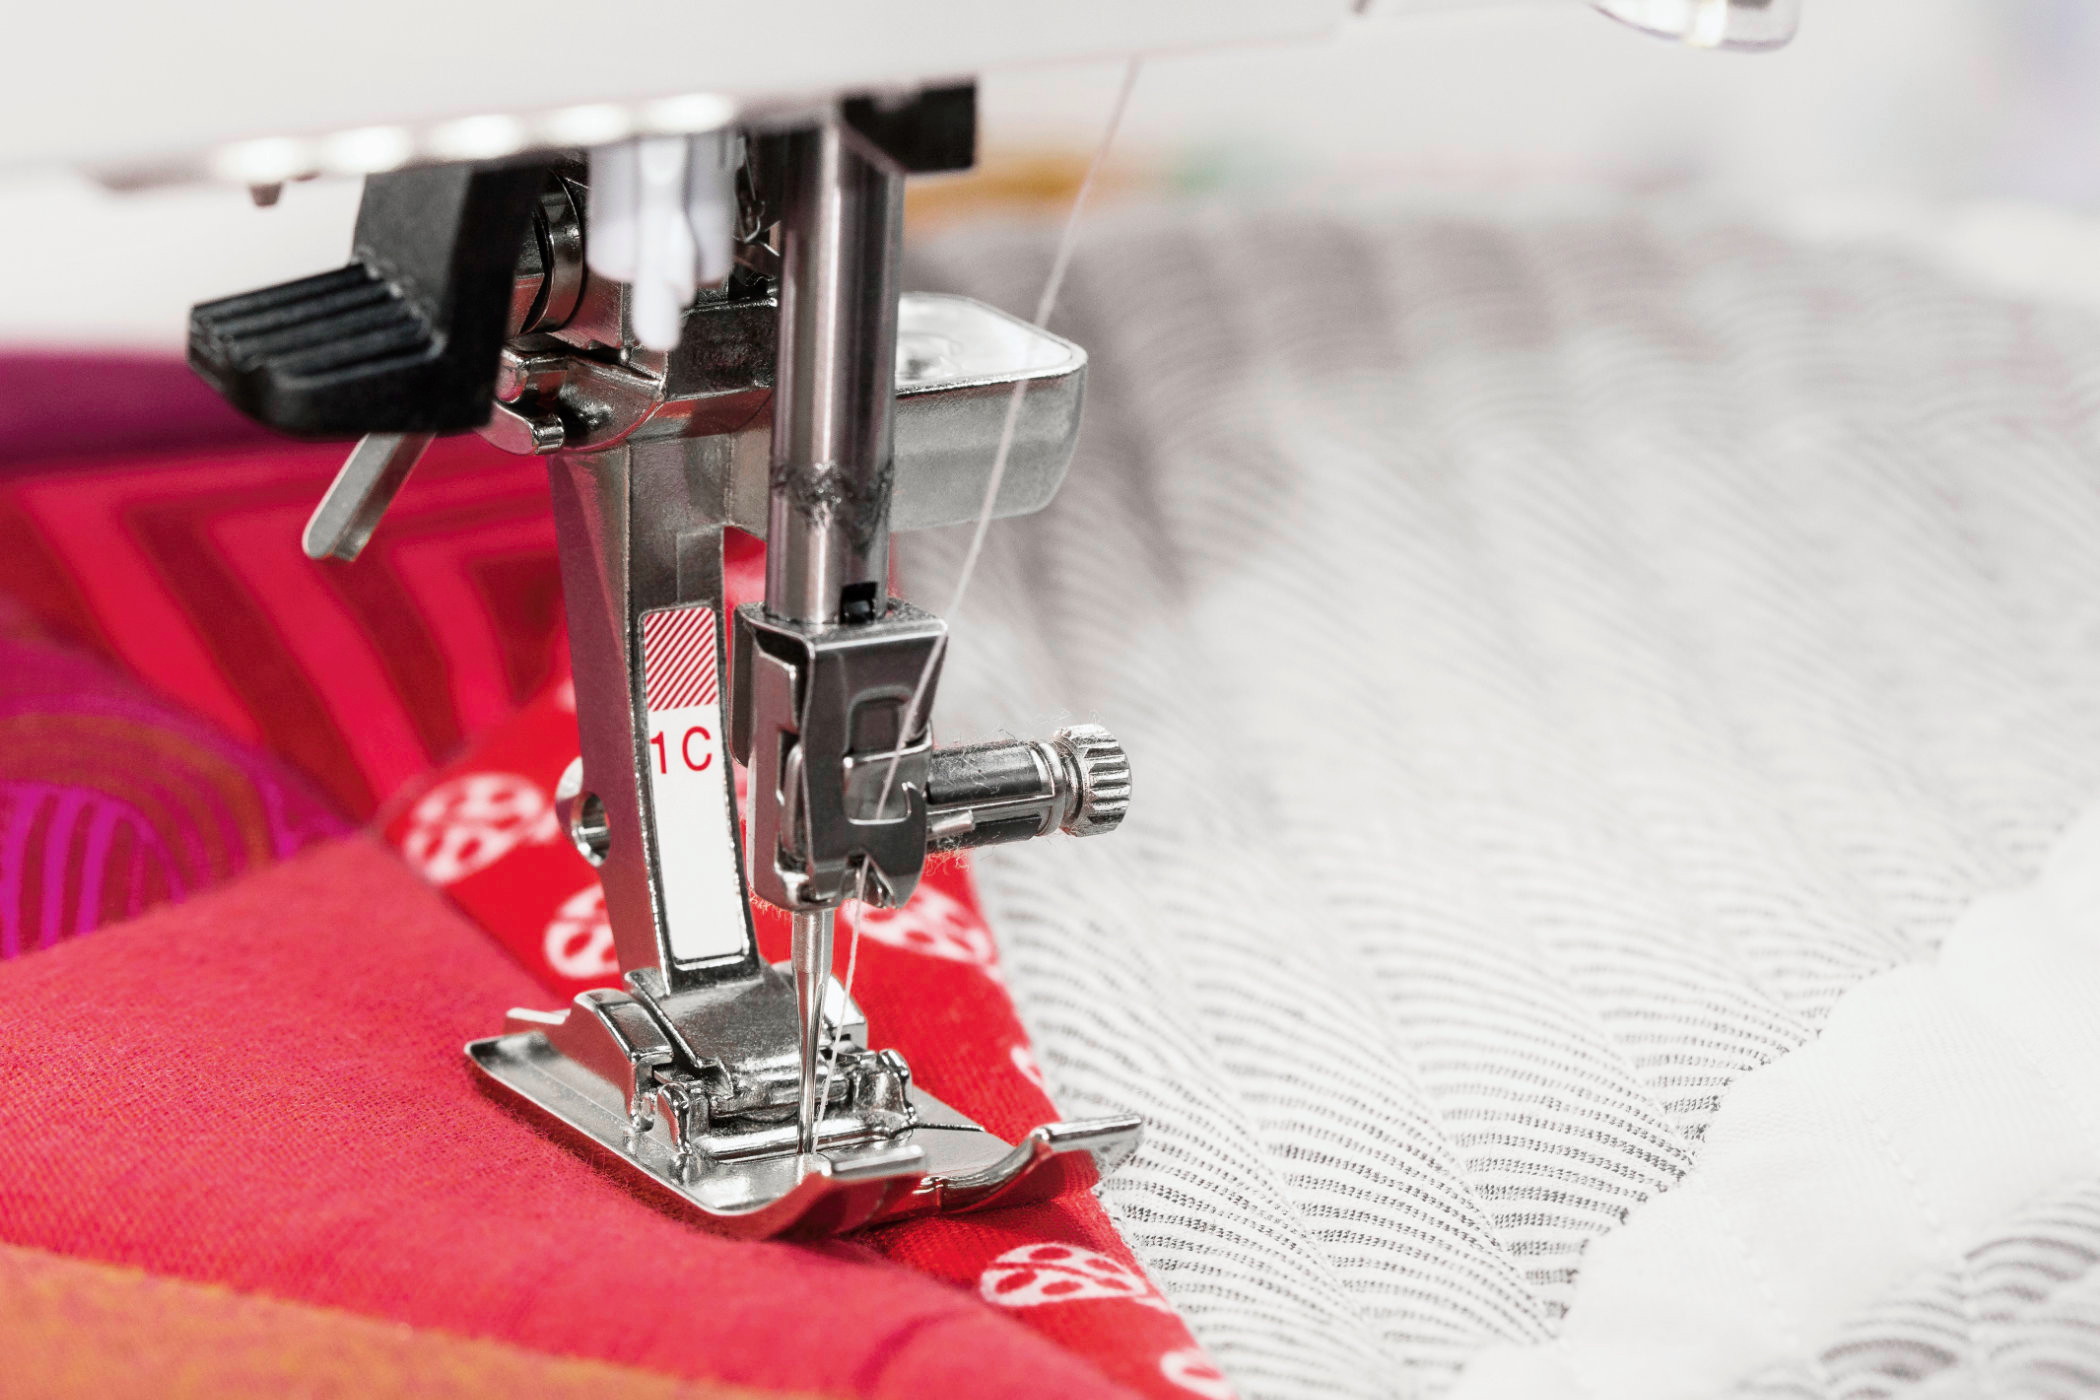 BERNINA FAQ – Find answers to frequently asked questions.